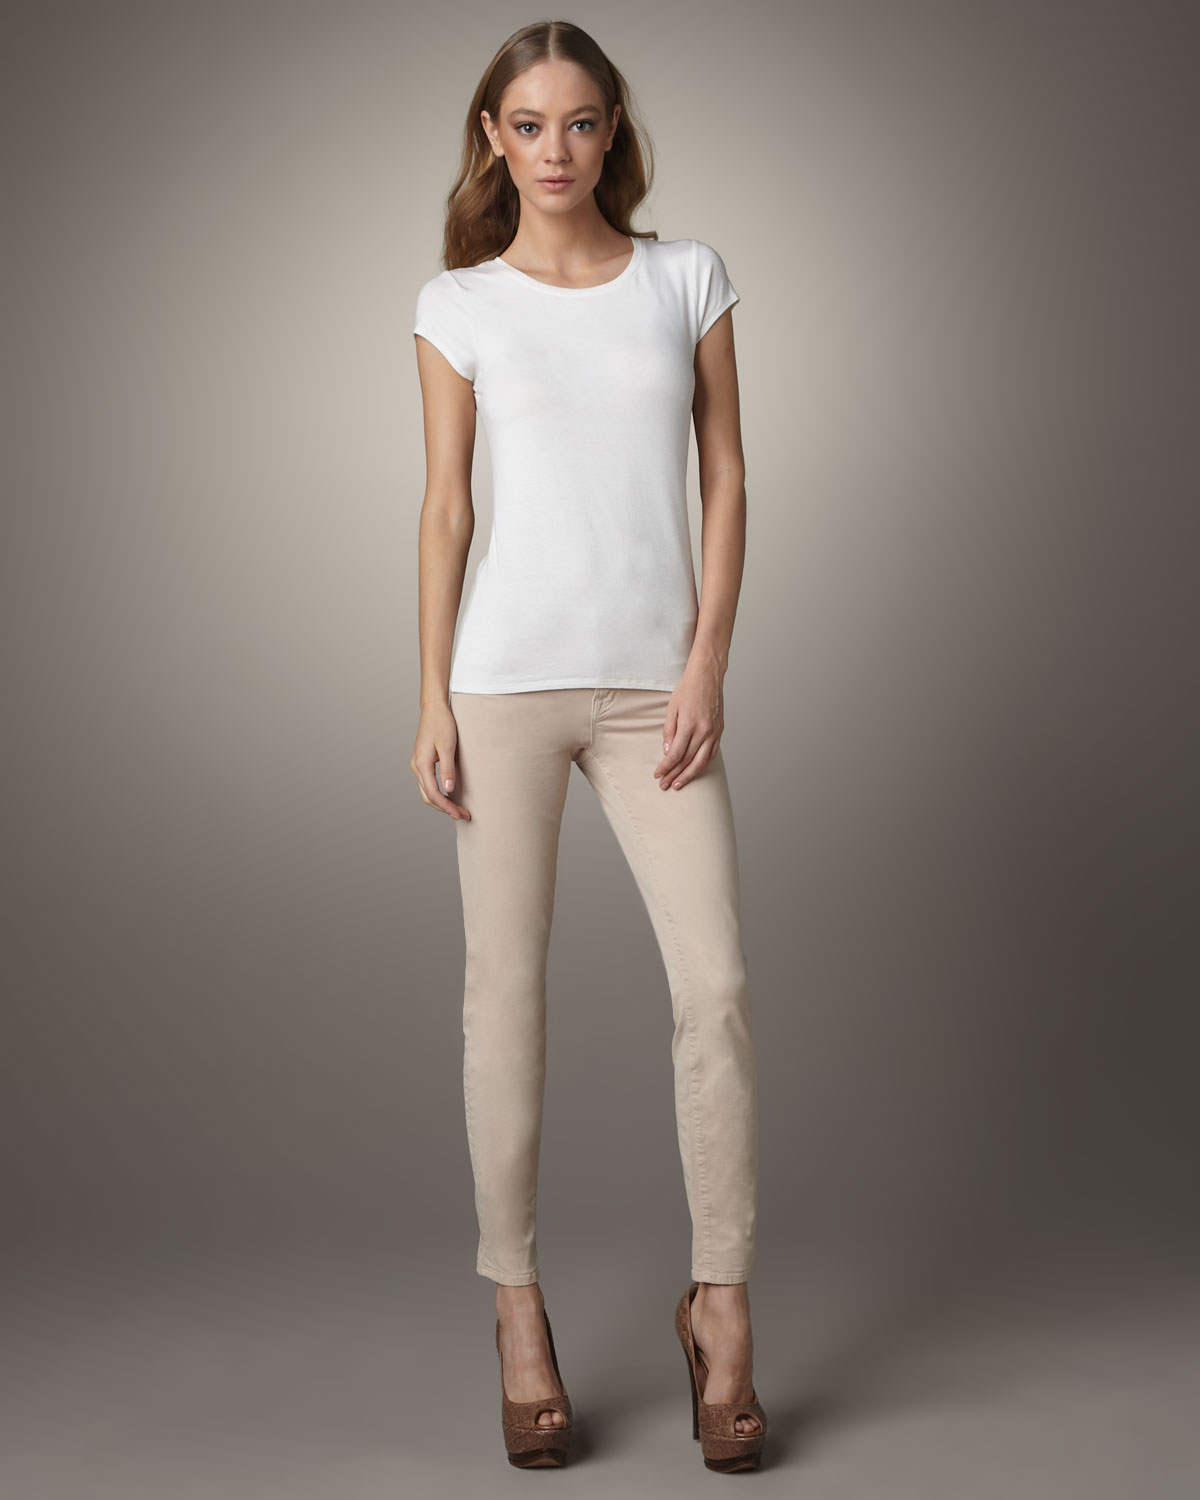 Lyst - J Brand 811 Mid-Rise Skinny Twill Jeans, Nude In -5073